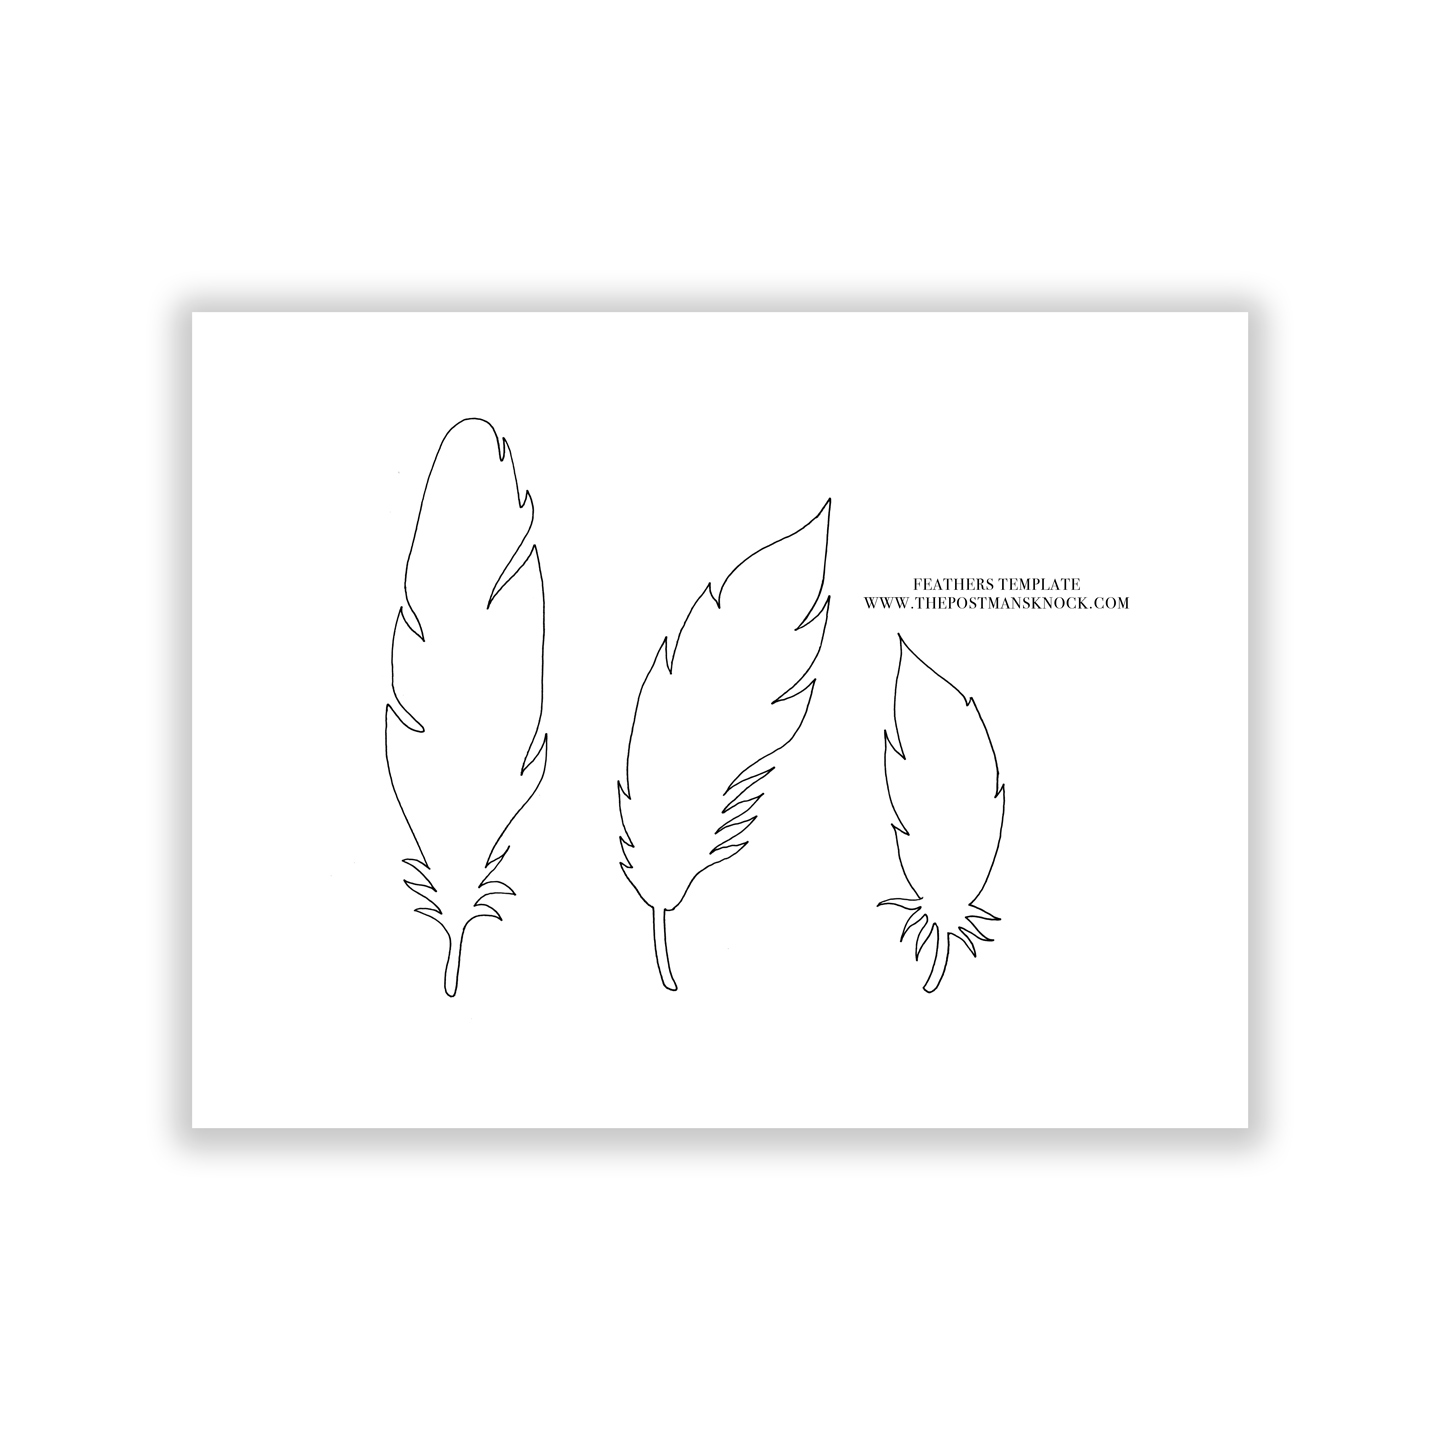 Paper Feathers Template